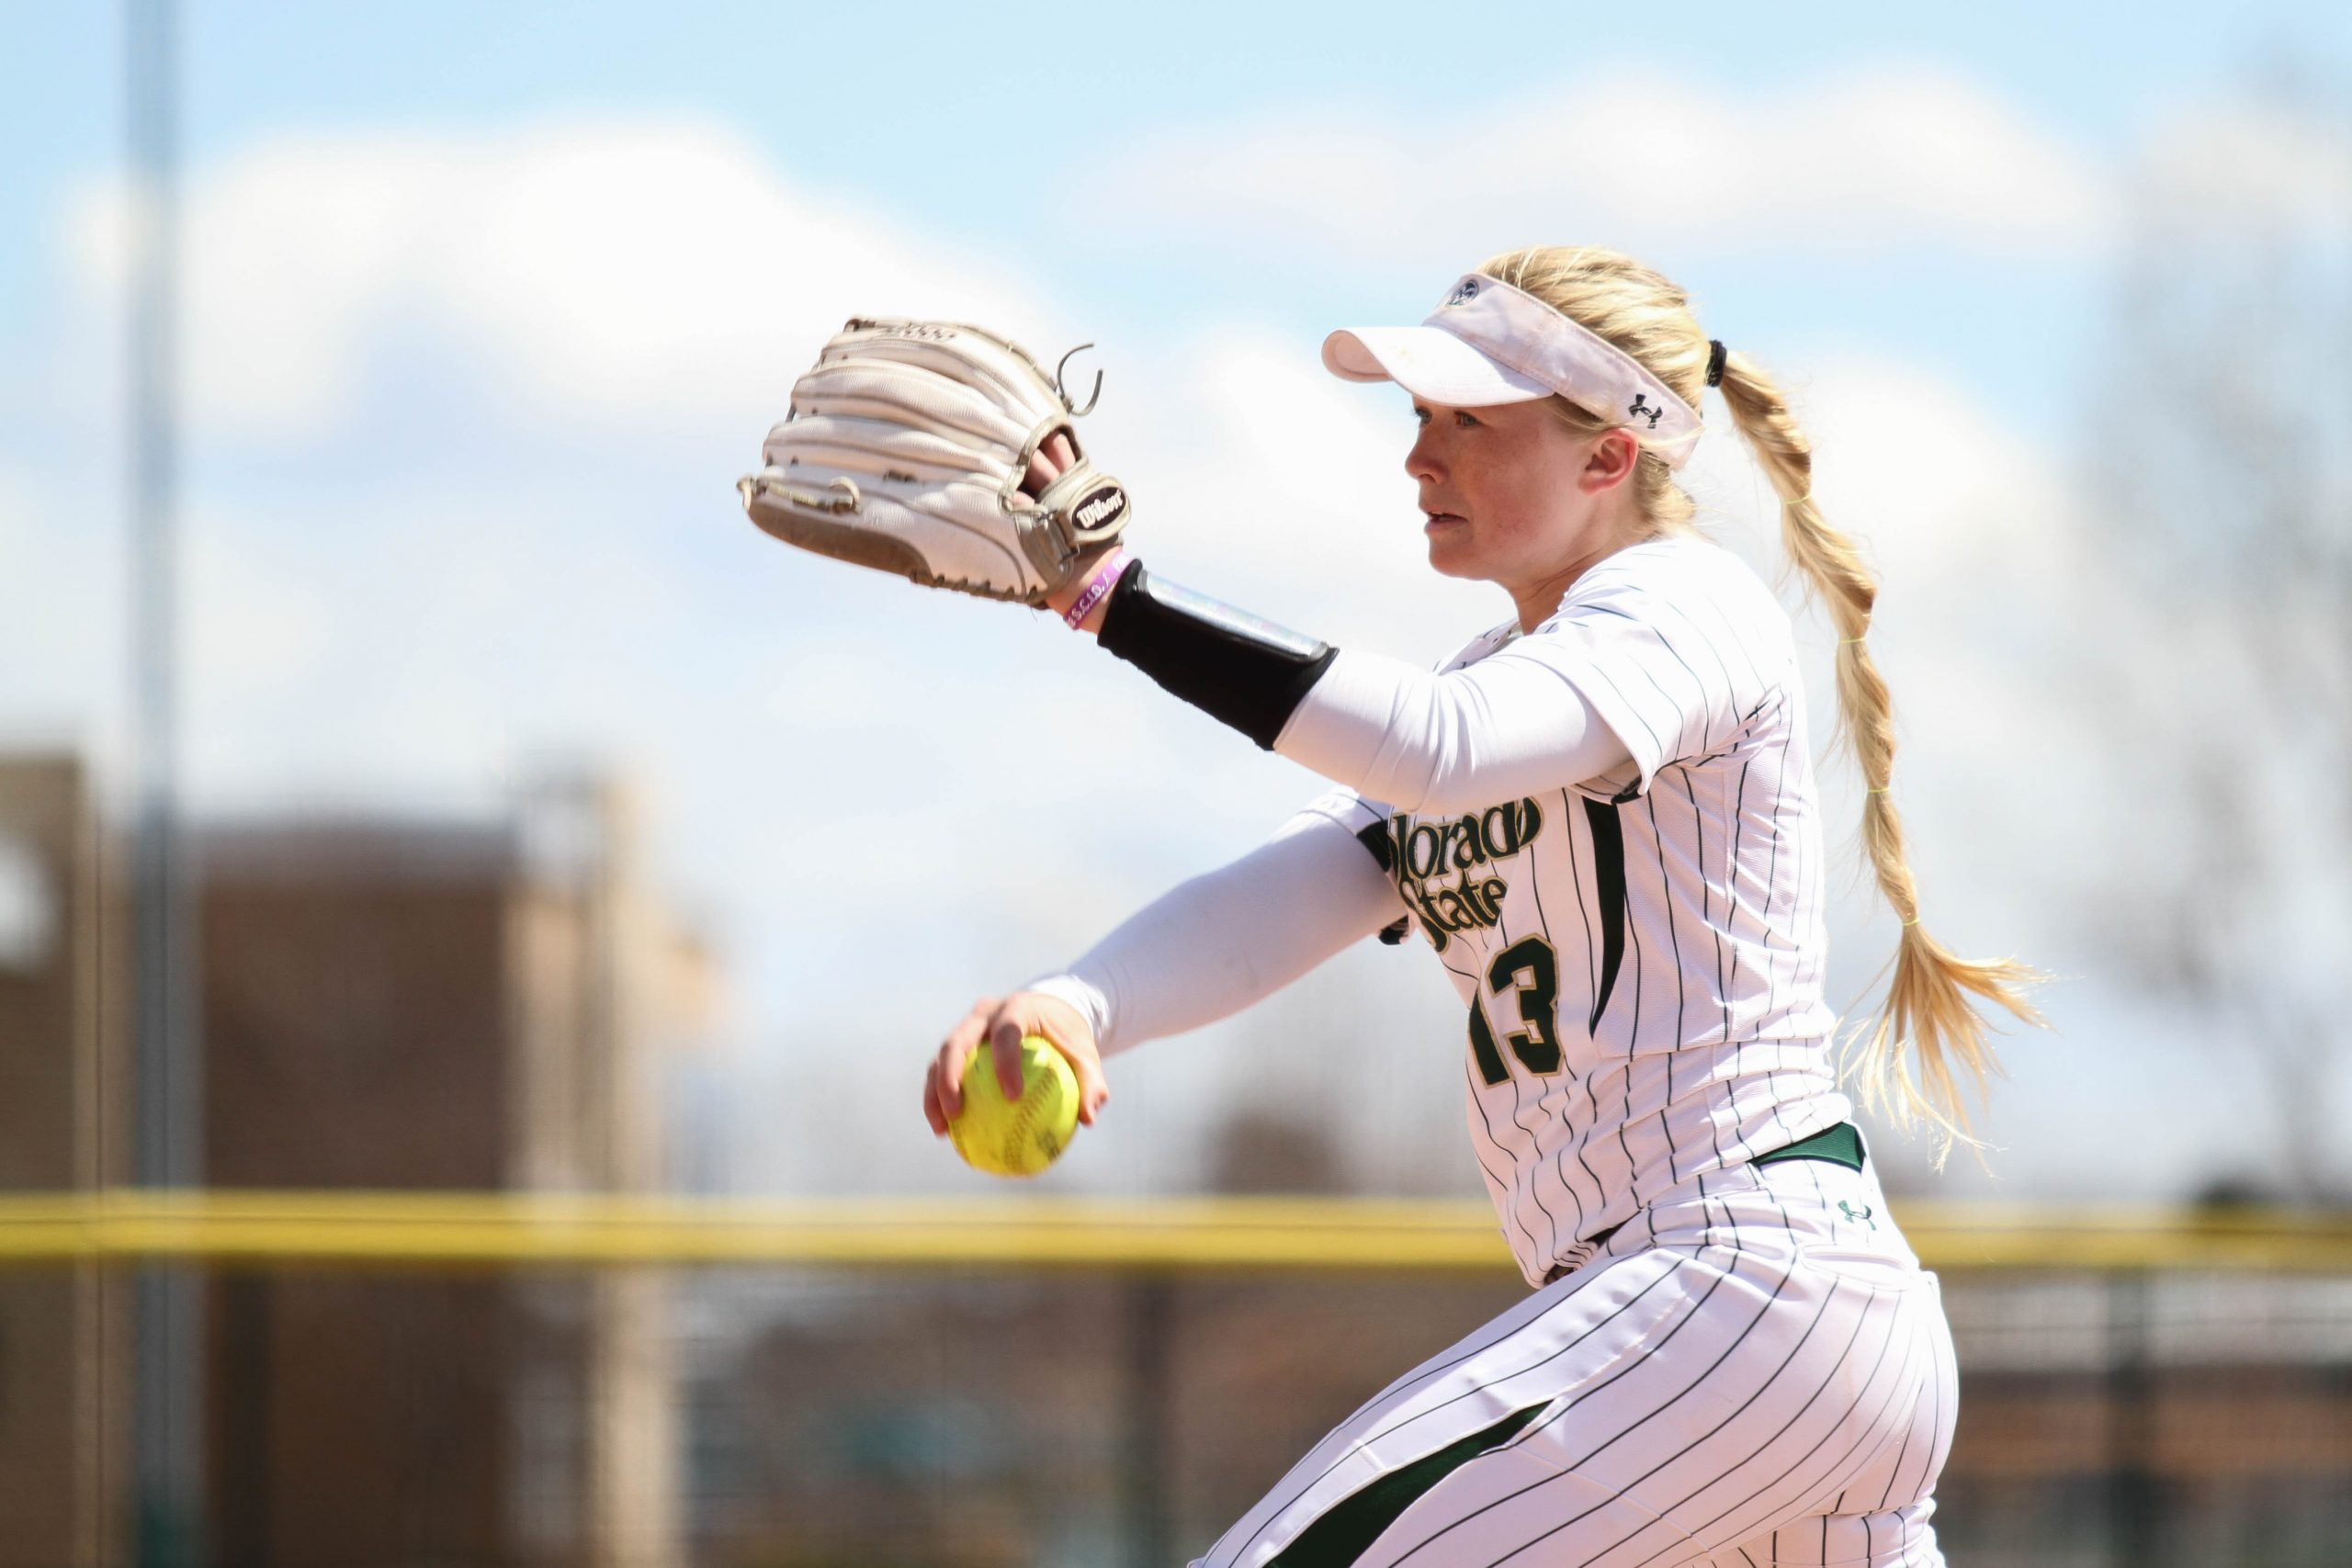 Sports for Dummies: Softball and baseball differ more than